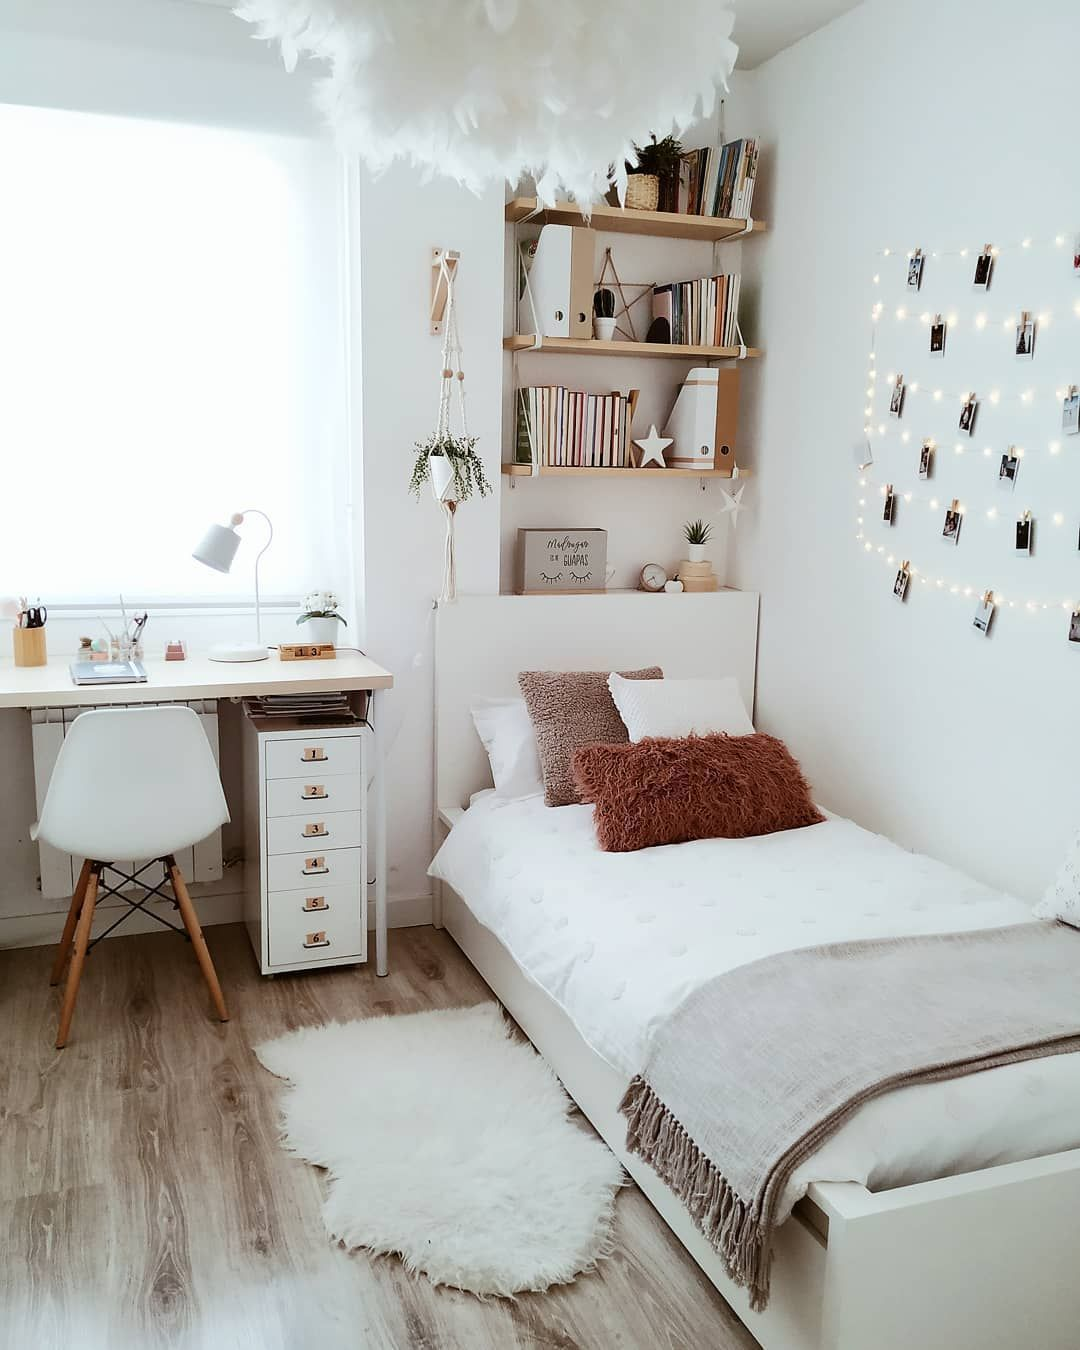 Photo of 45 Minimalistisches Schlafzimmer Dekorationsideen, die bequem sind #minimalistis… – World Best #Diy Blogs